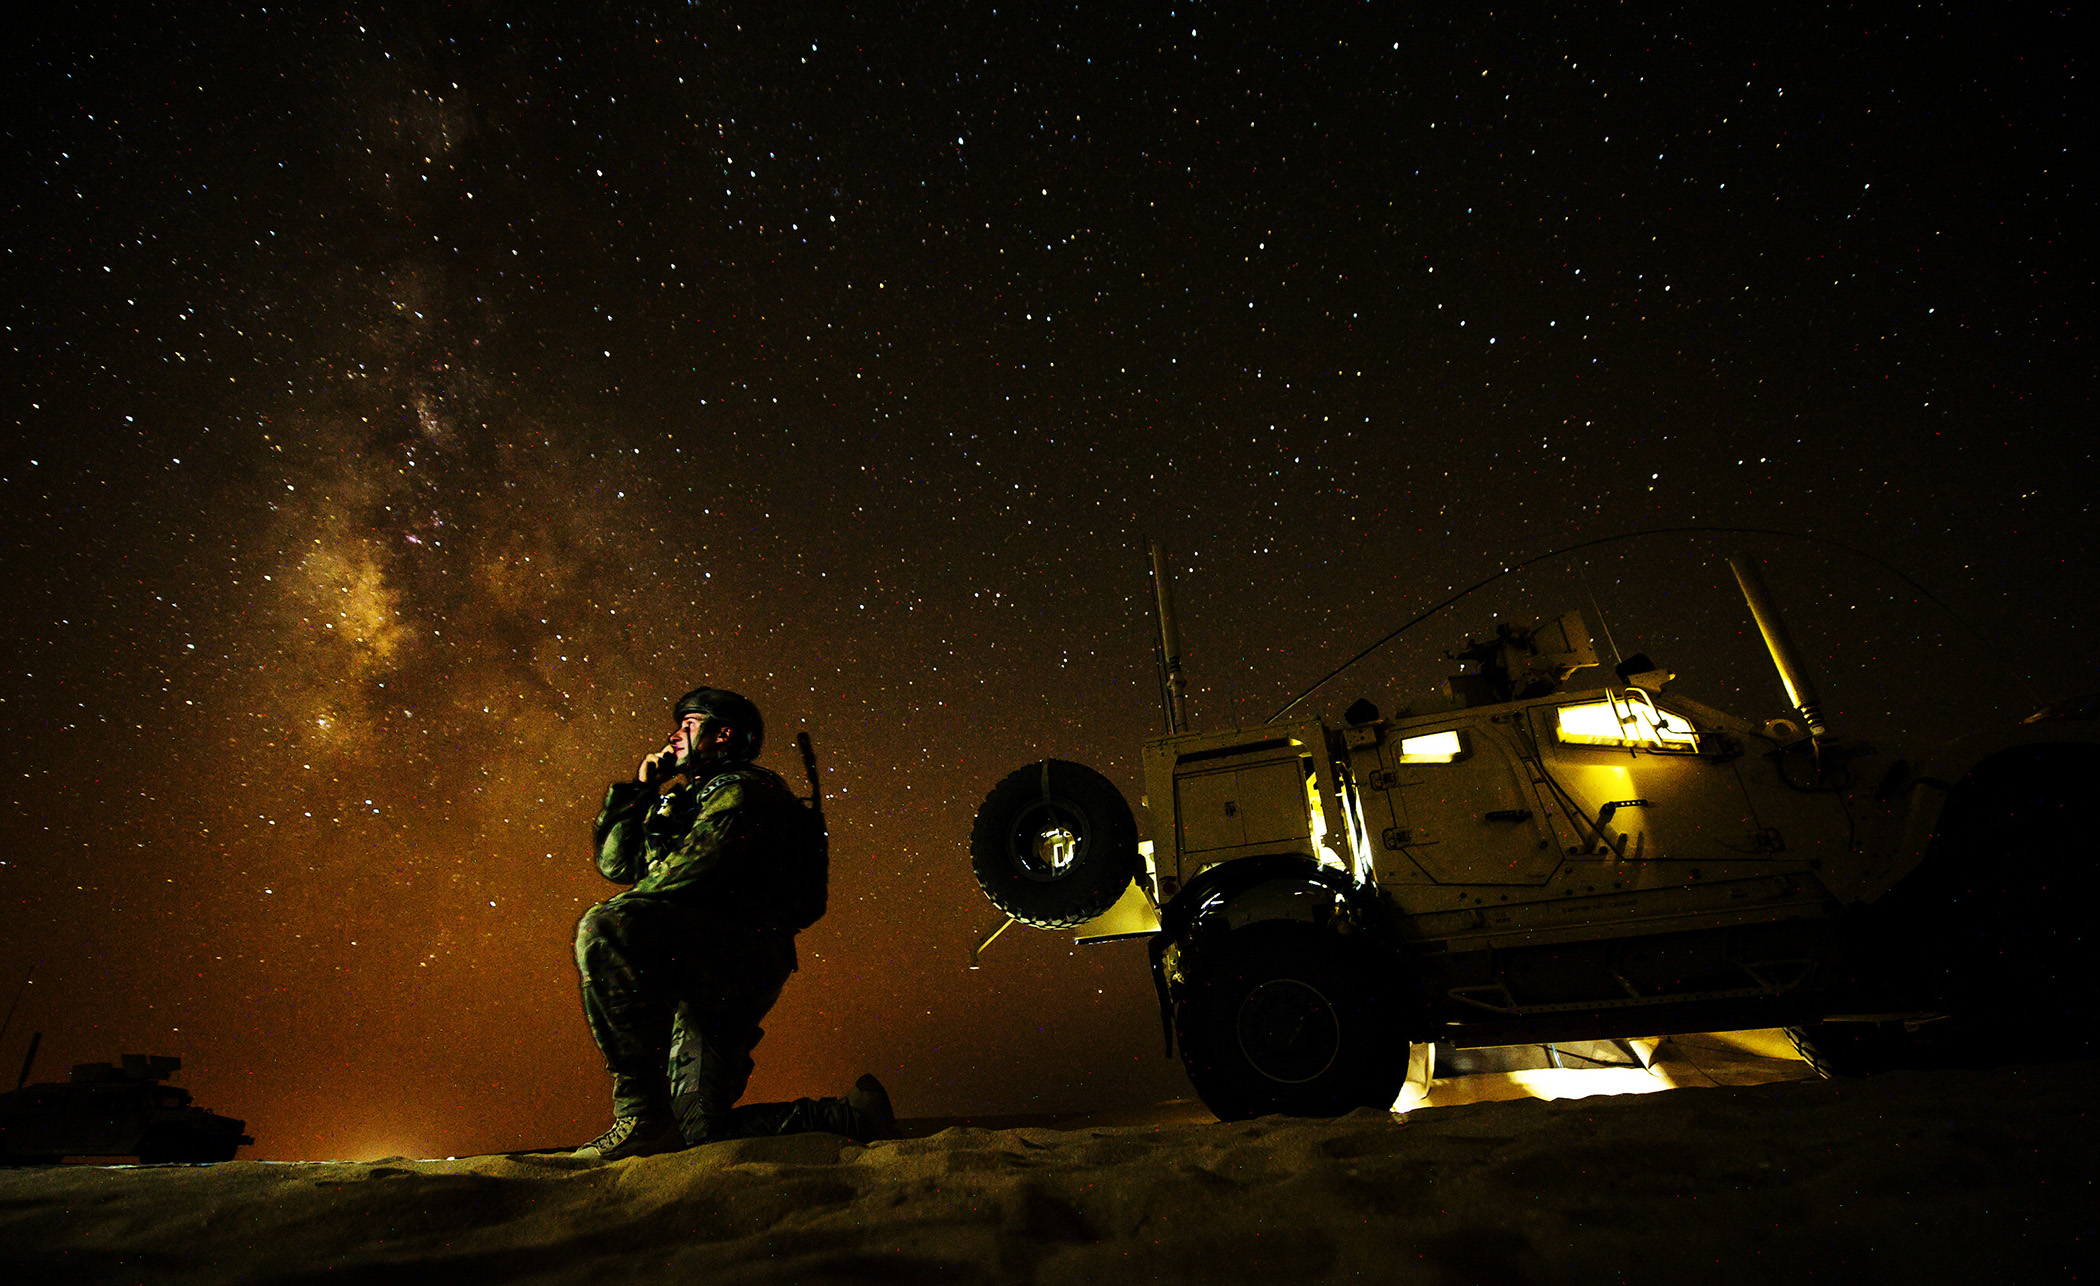 US Air Force and the Night Sky: Amazing Photos